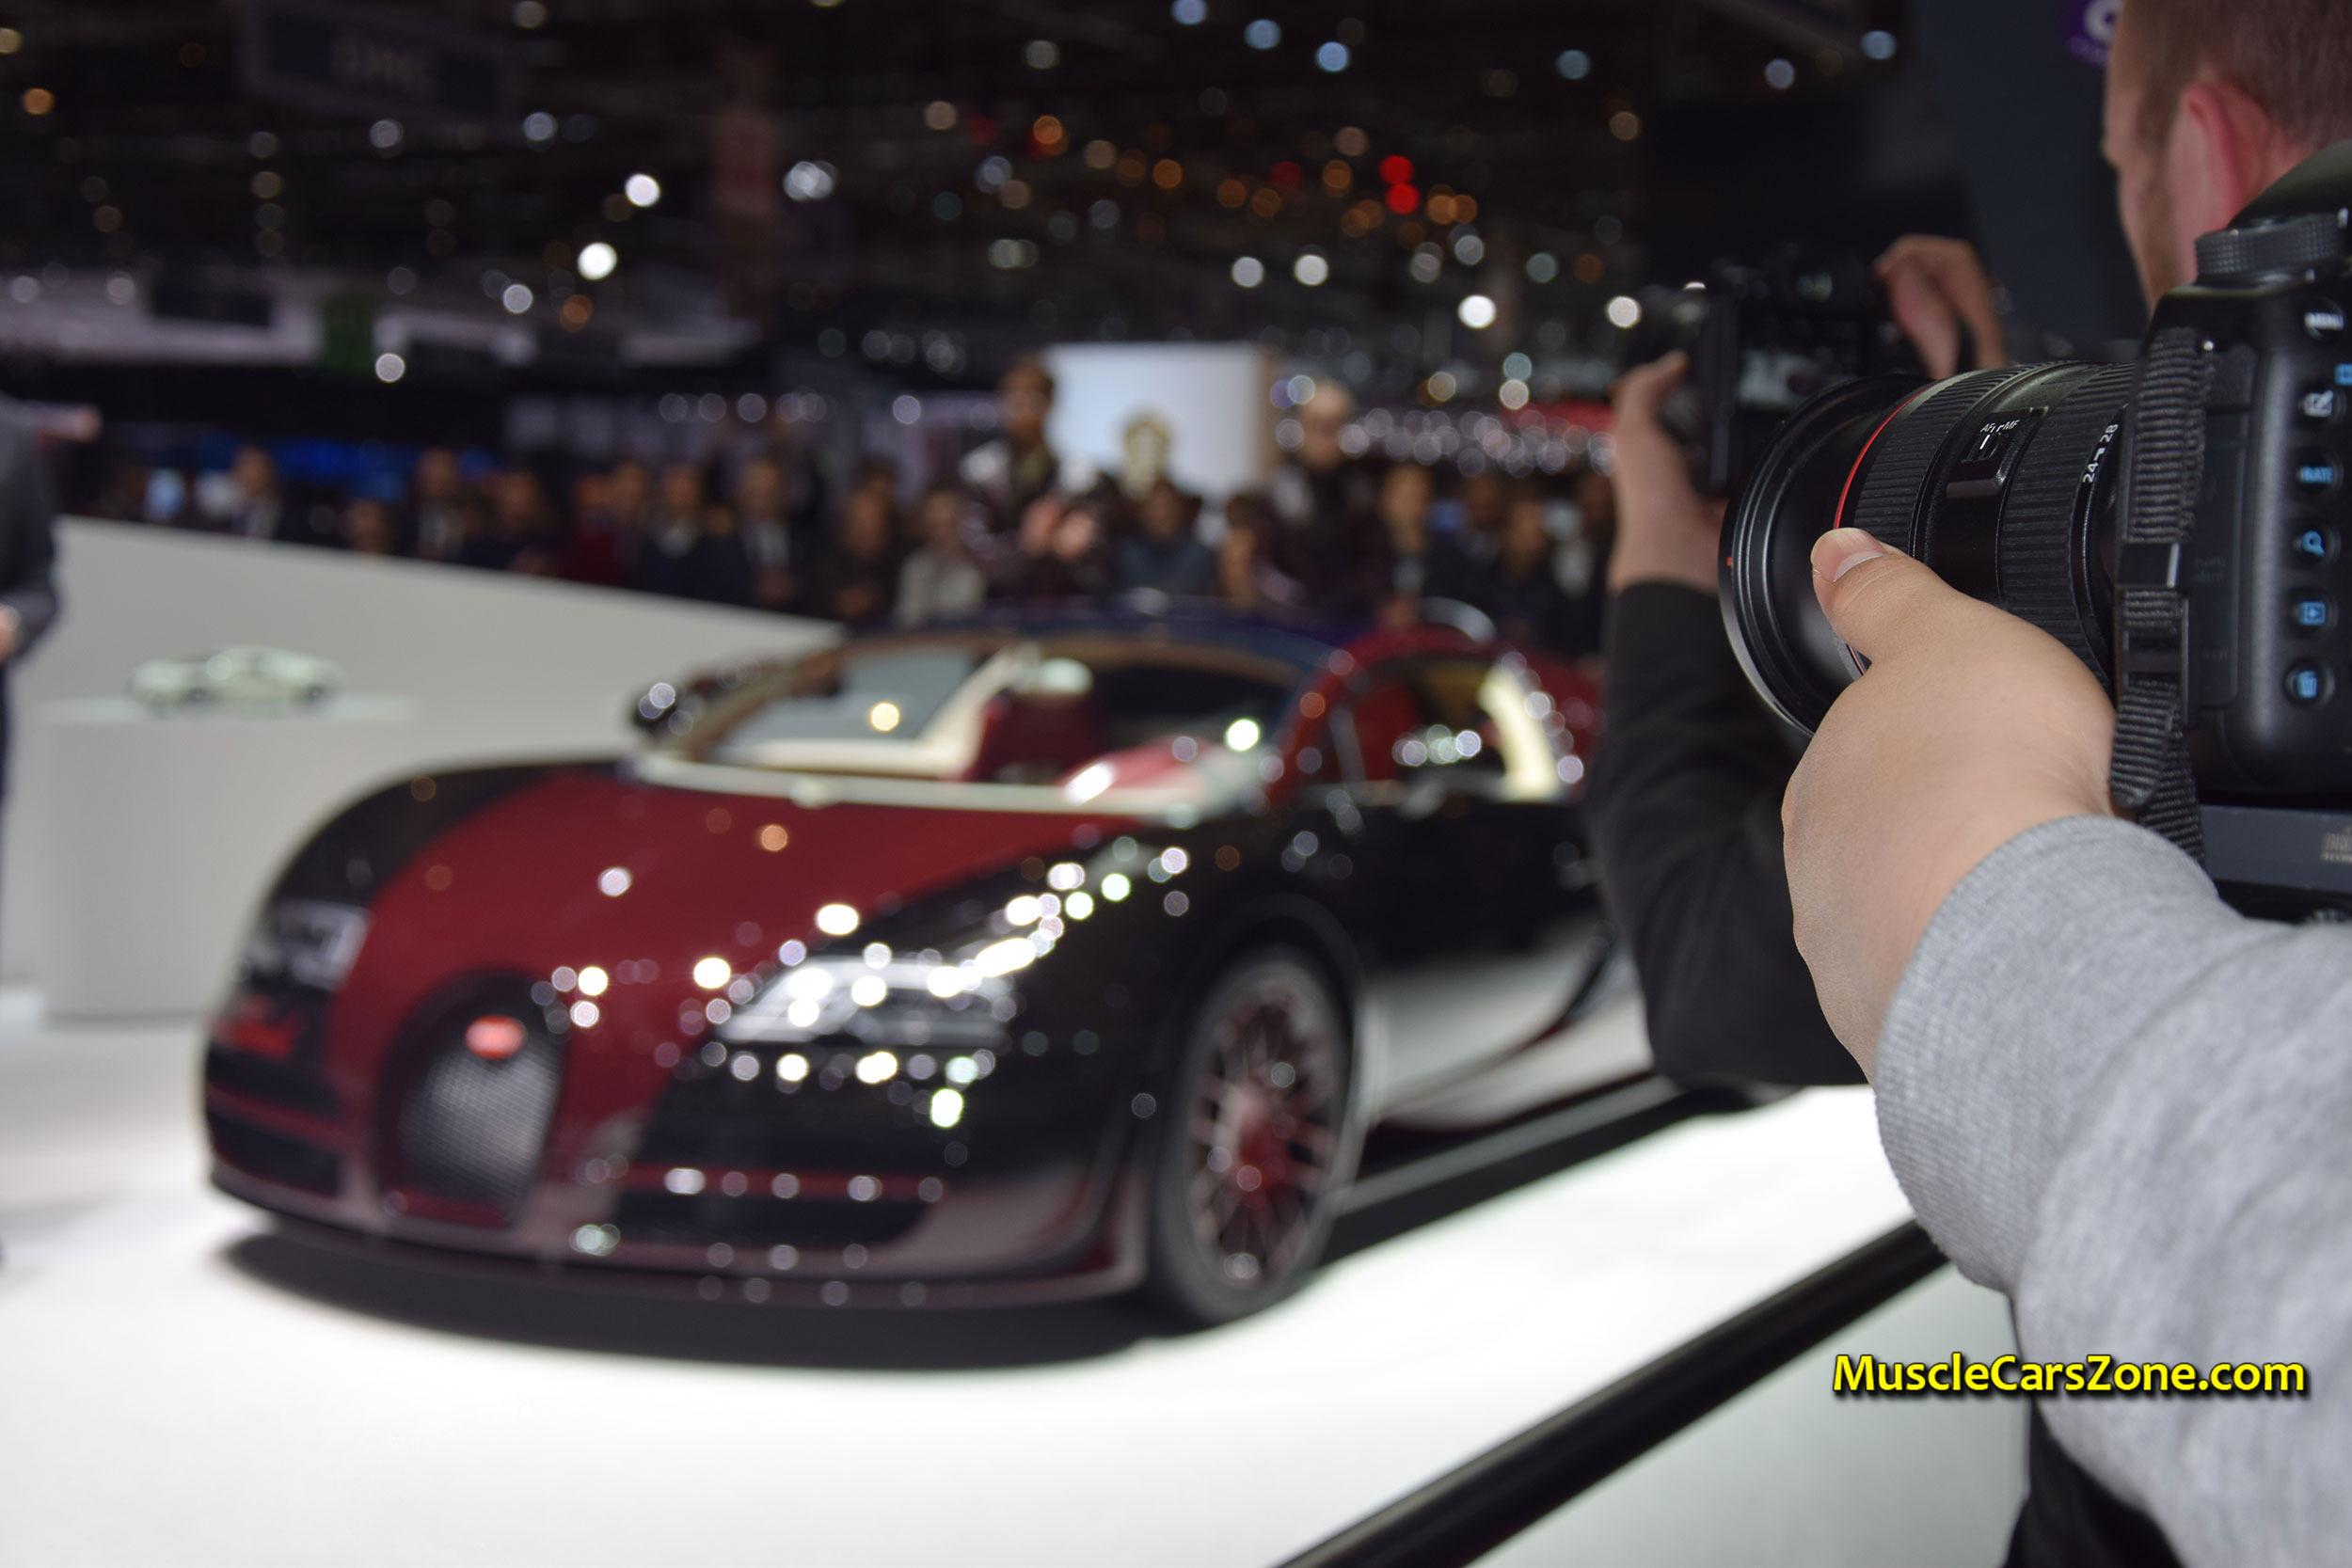 2015-Bugatti-Press-Conference-The-1st-the-450th-Bugatti-Veyron-03-2015-Geneva-Motor-Show.JPG Gorgeous Bugatti Veyron Grand Sport Vitesse Drag Race Cars Trend